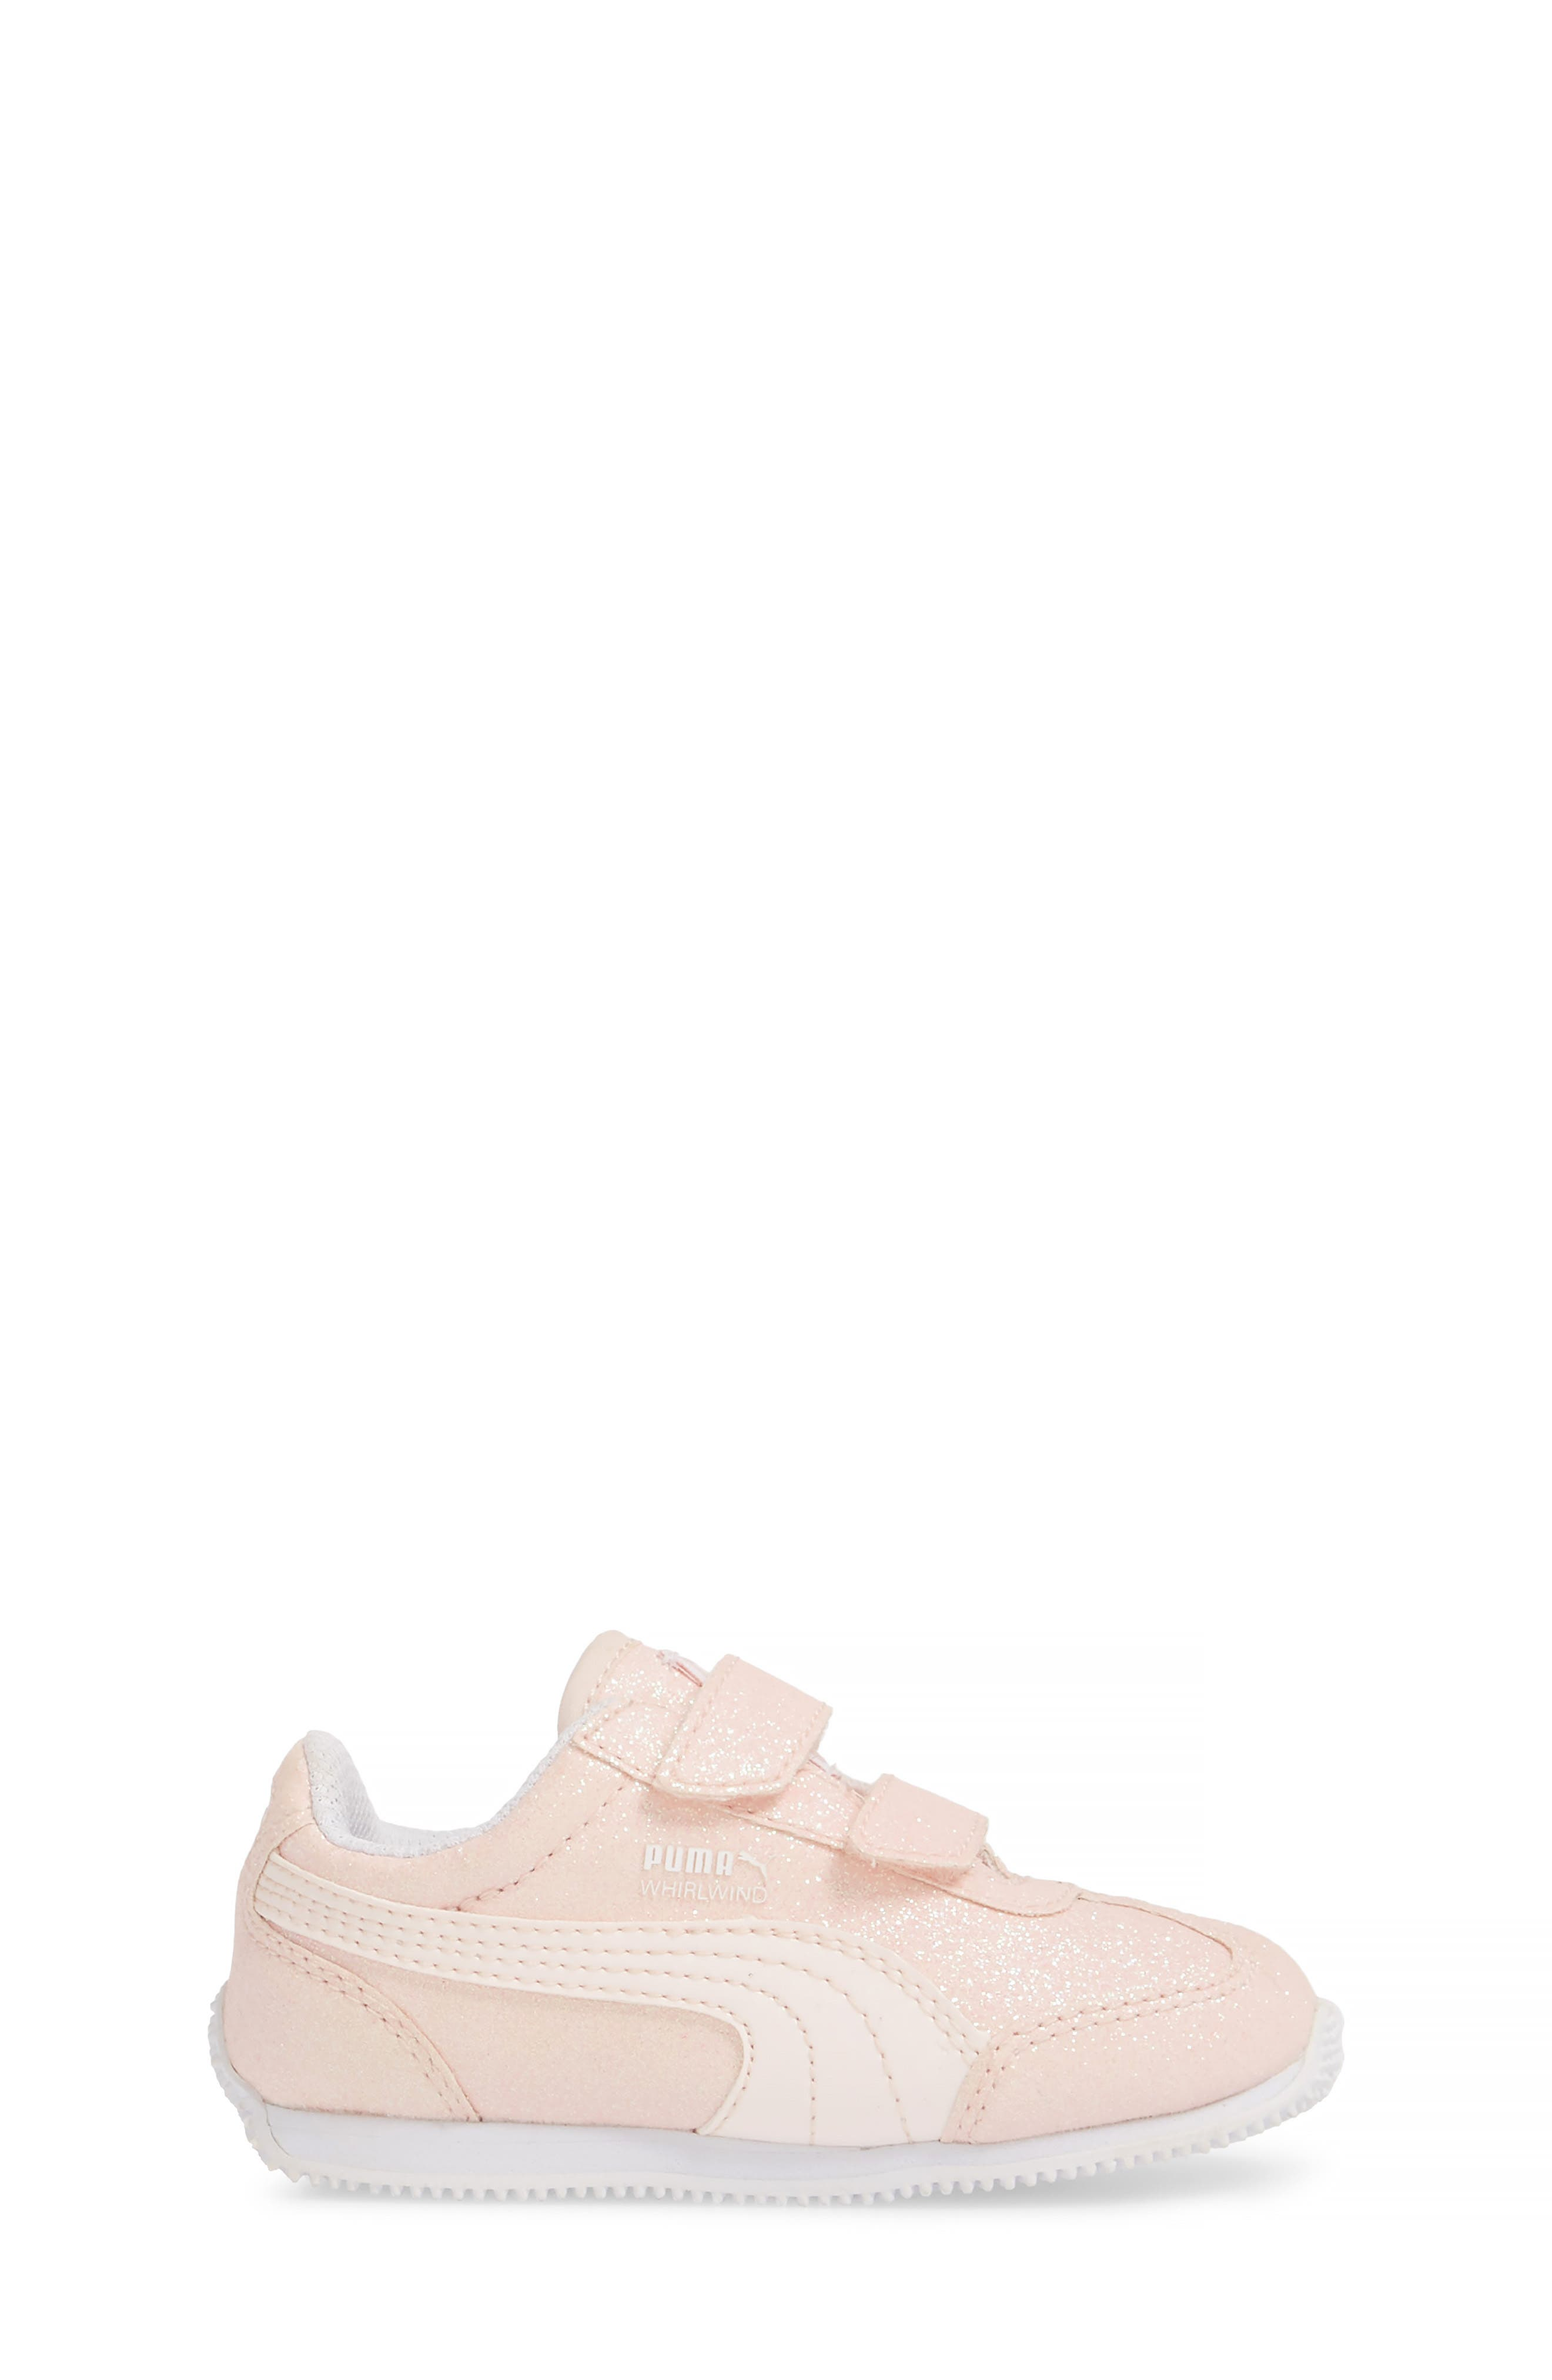 Whirlwind Glitz Sneaker,                             Alternate thumbnail 3, color,                             Pearl/ Puma White